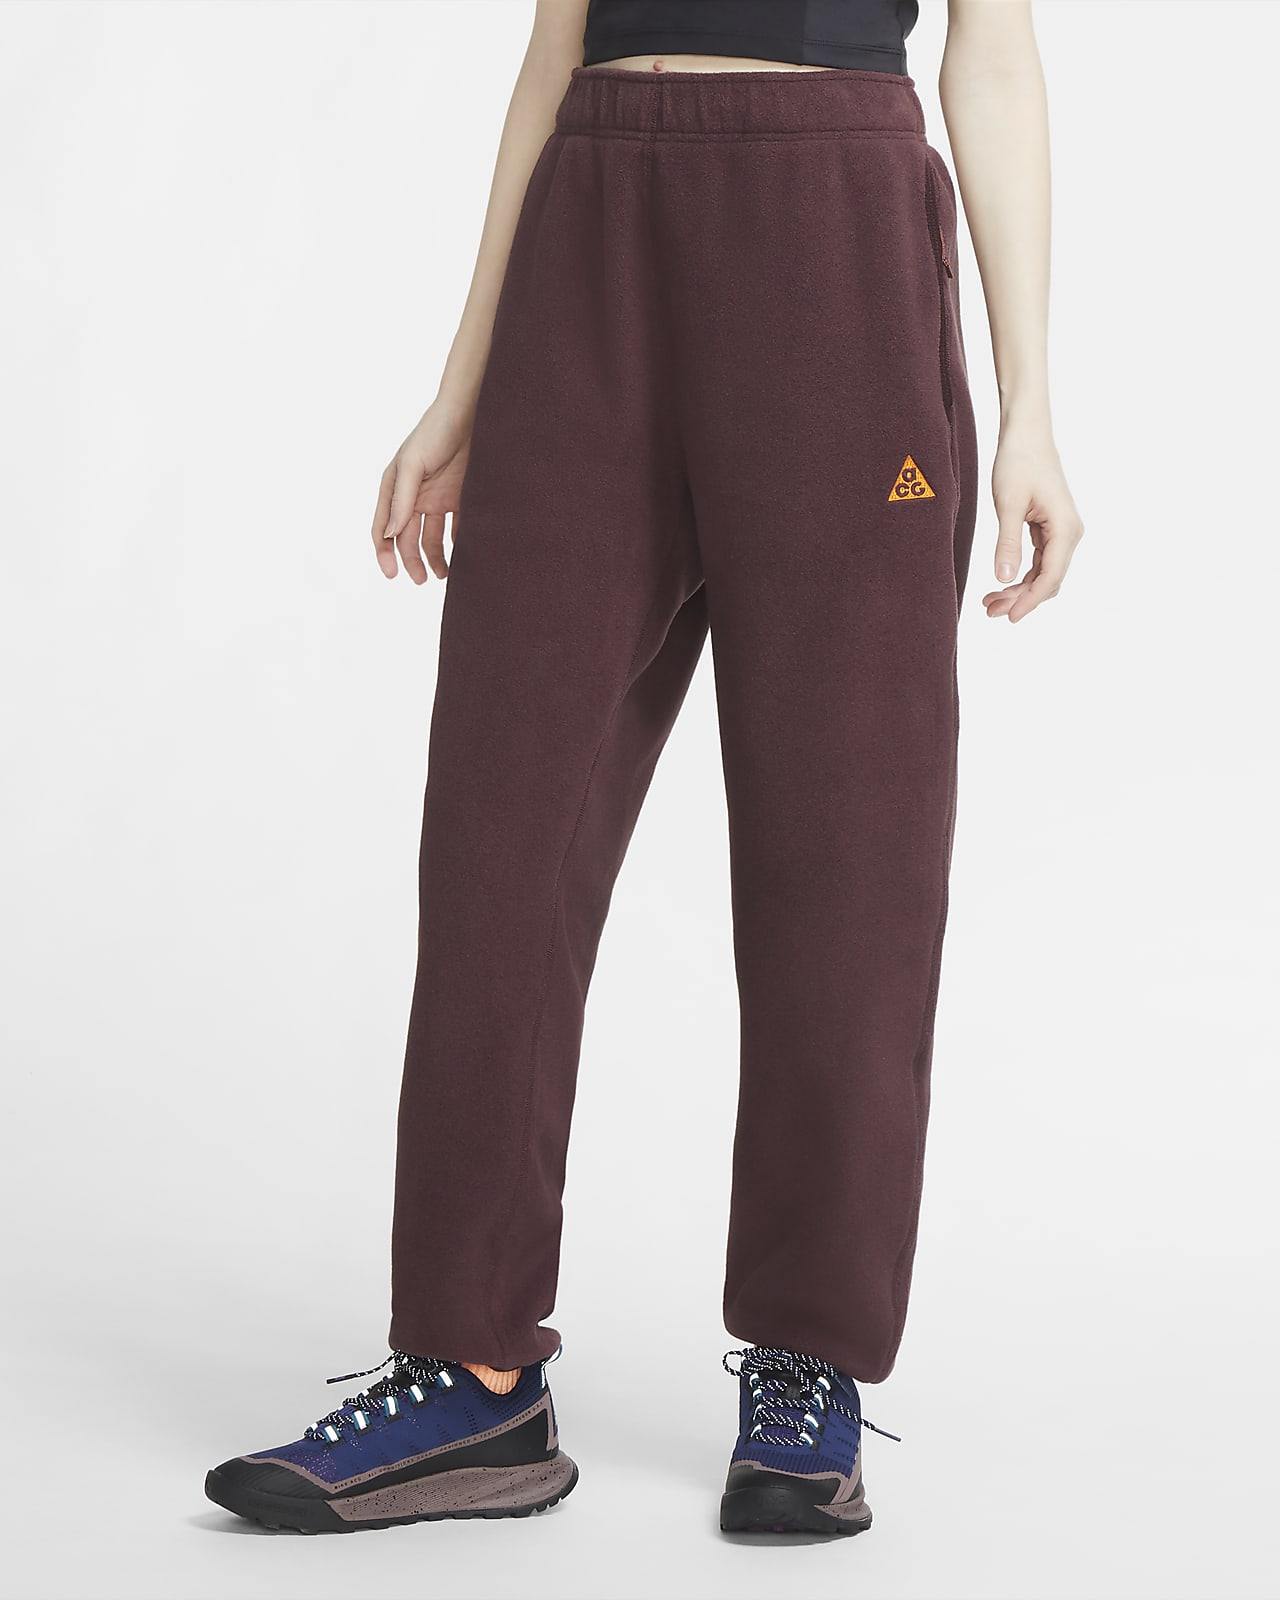 Nike ACG Polartec® 'Wolf Tree' Women's Trousers